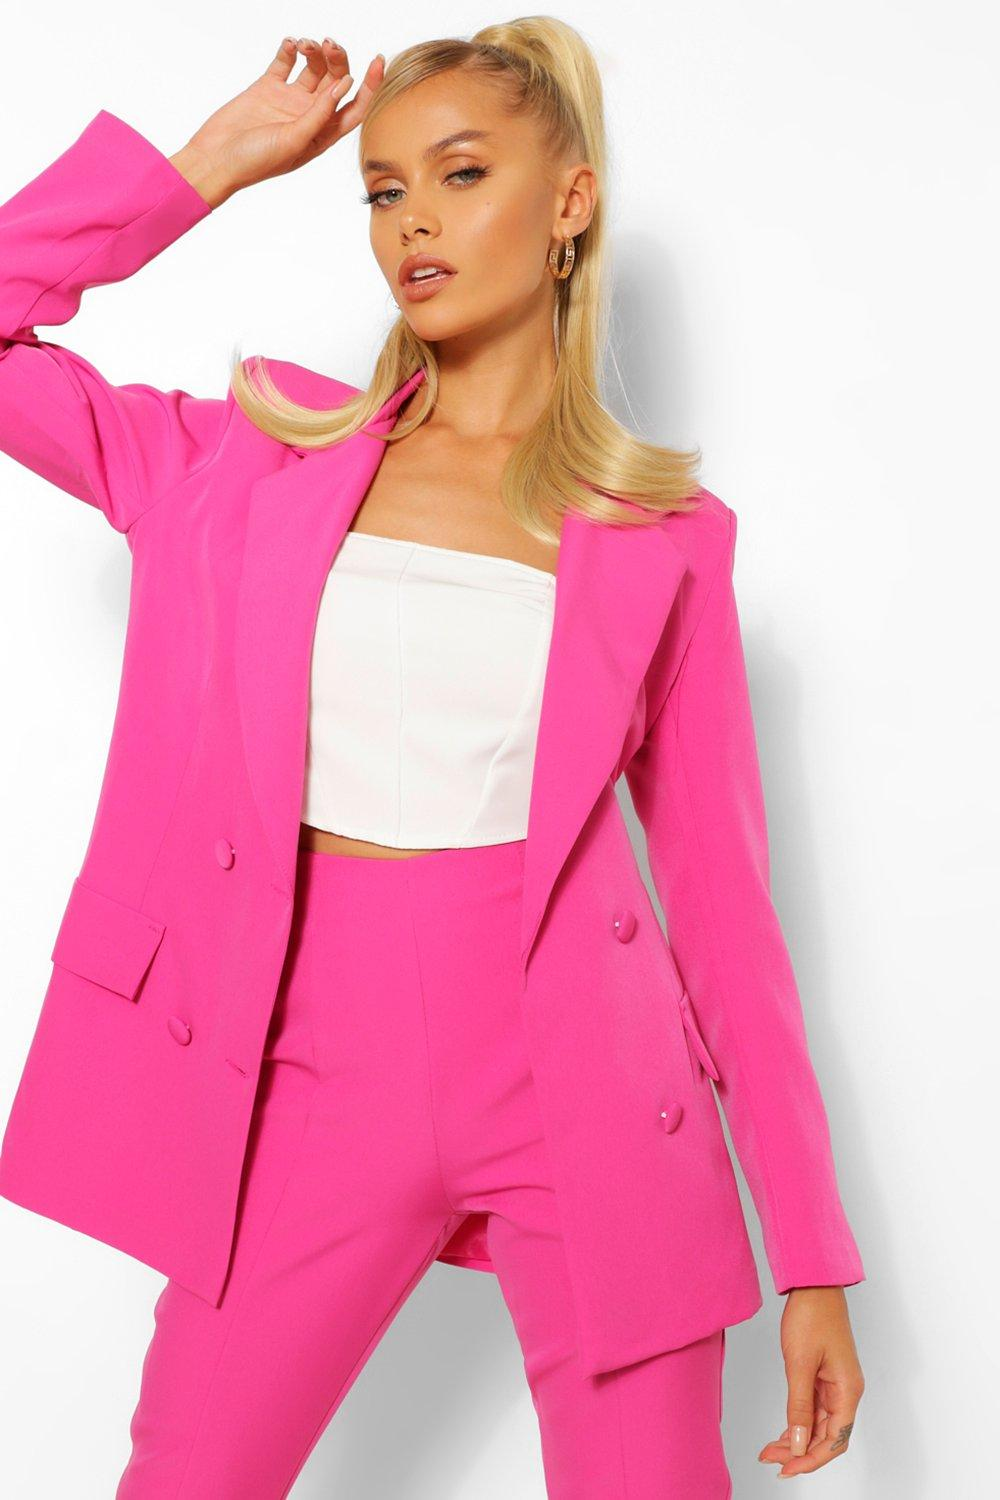 80s Windbreakers, Jackets, Coats Womens Woven Double Breasted Pocket Blazer - Pink - 10 $28.00 AT vintagedancer.com